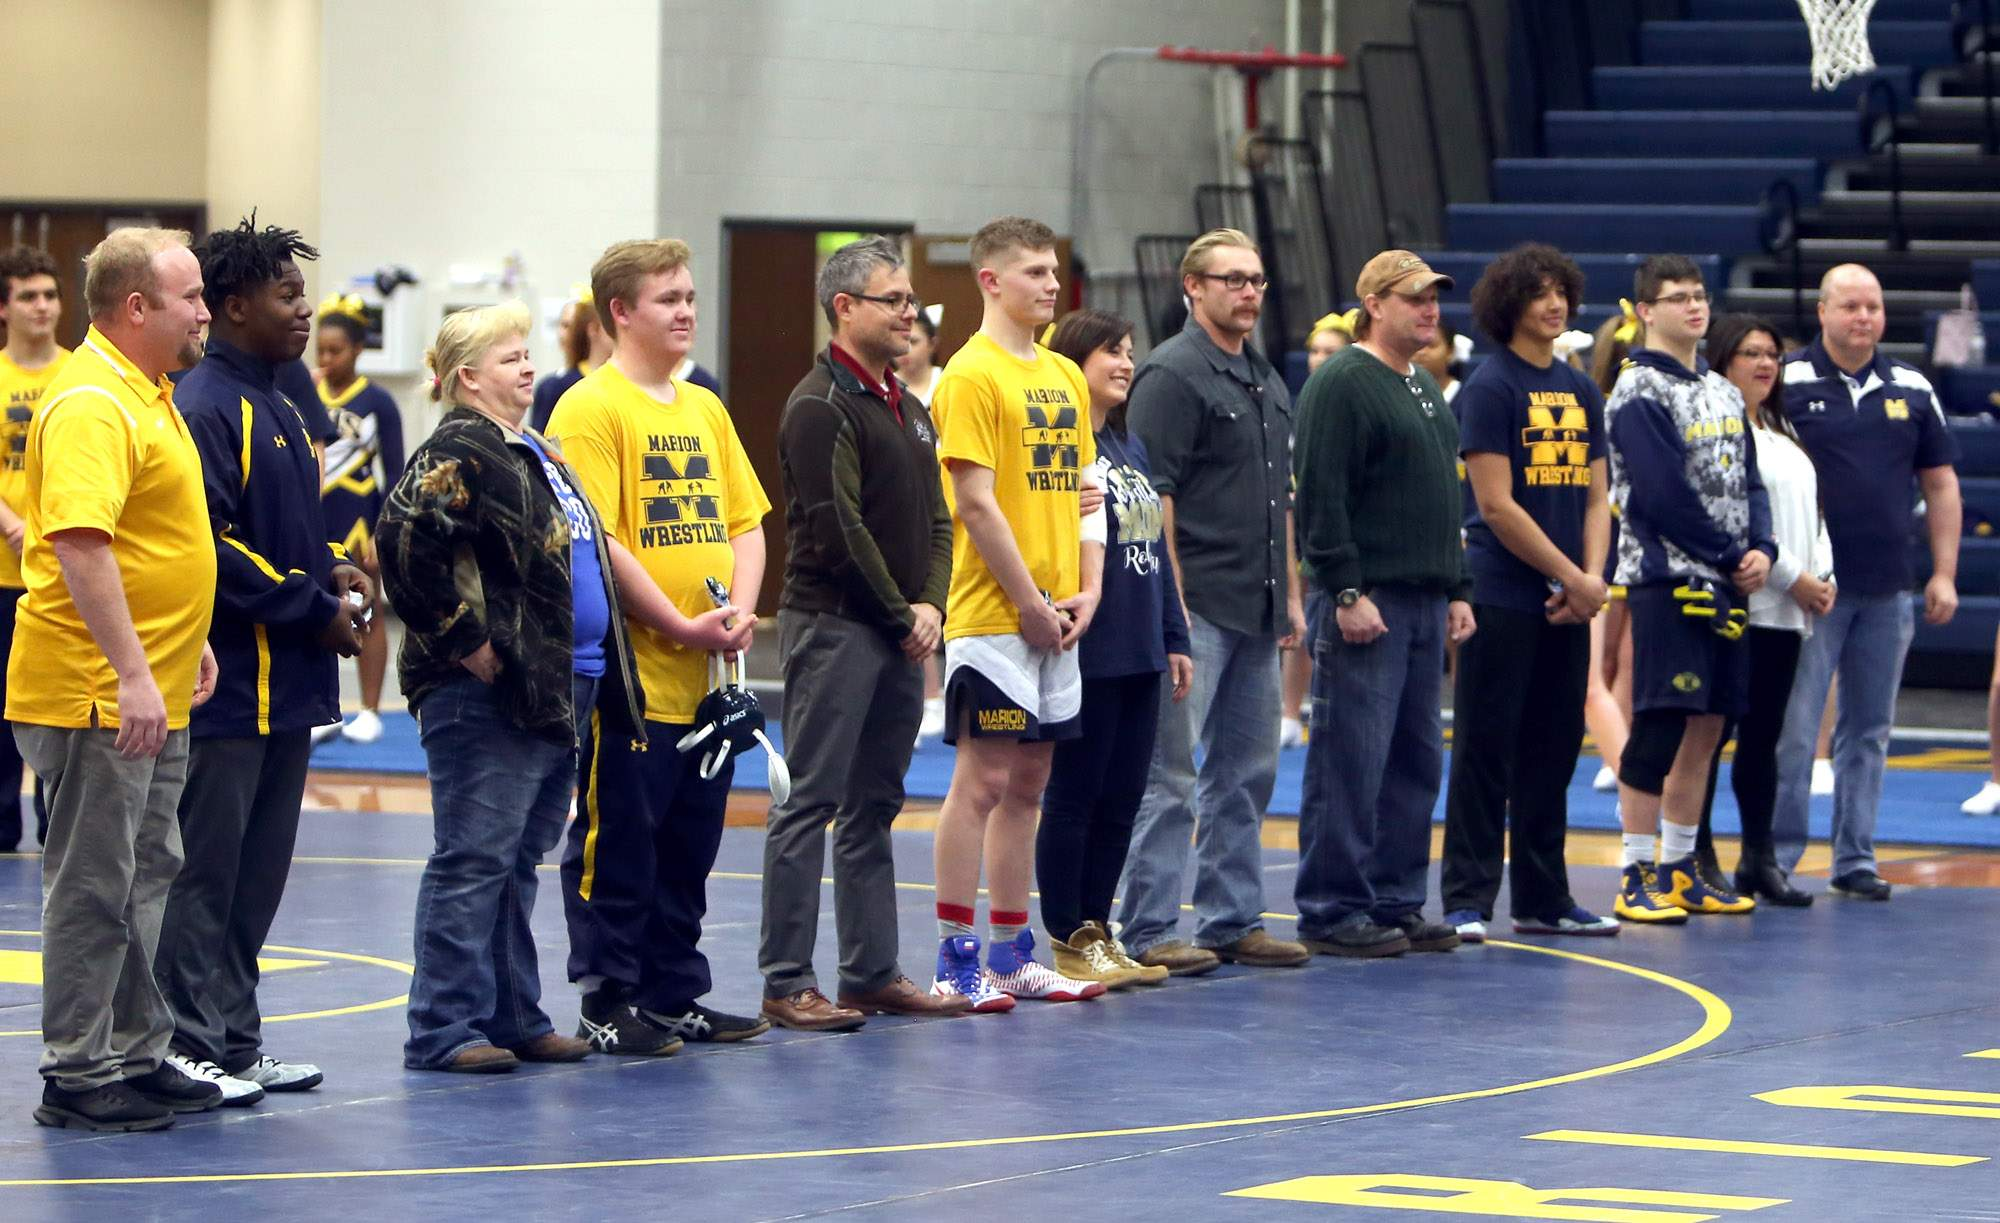 Marion seniors Kasolon King, JoeAbe Eroh, Rohan Cook, Michael Cerv and Michael Cantrell were honored prior to Tuesday's match.